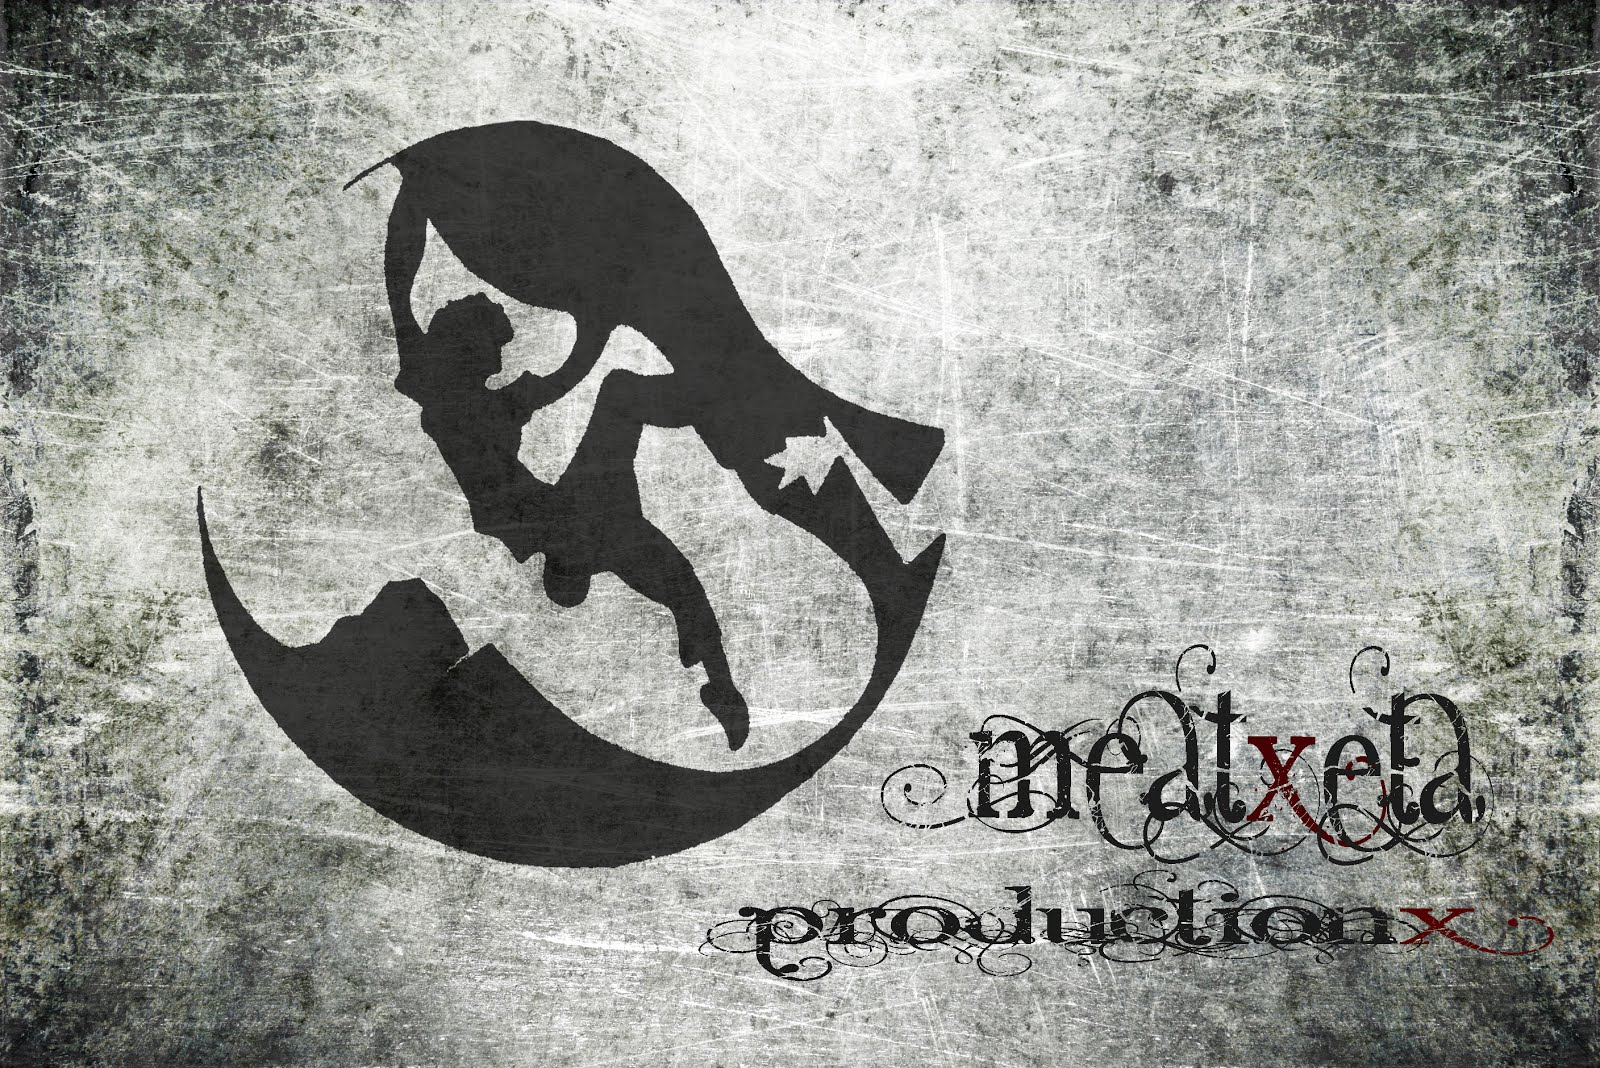 MEATXETA PRODUCTIONX